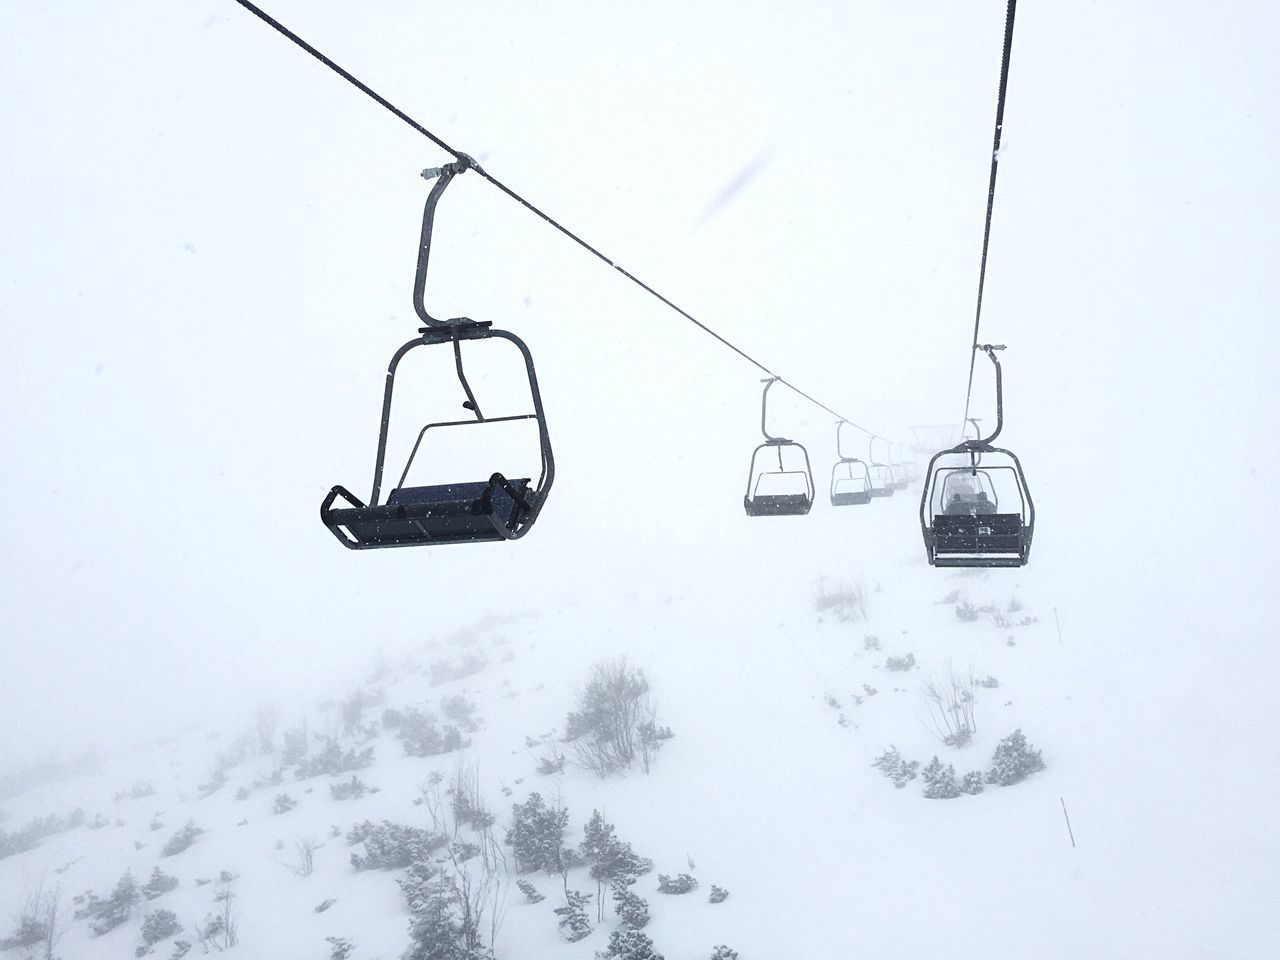 cold temperature, snow, winter, nature, weather, ski lift, transportation, hanging, beauty in nature, overhead cable car, outdoors, mode of transport, snowing, day, fog, scenics, no people, sky, tree